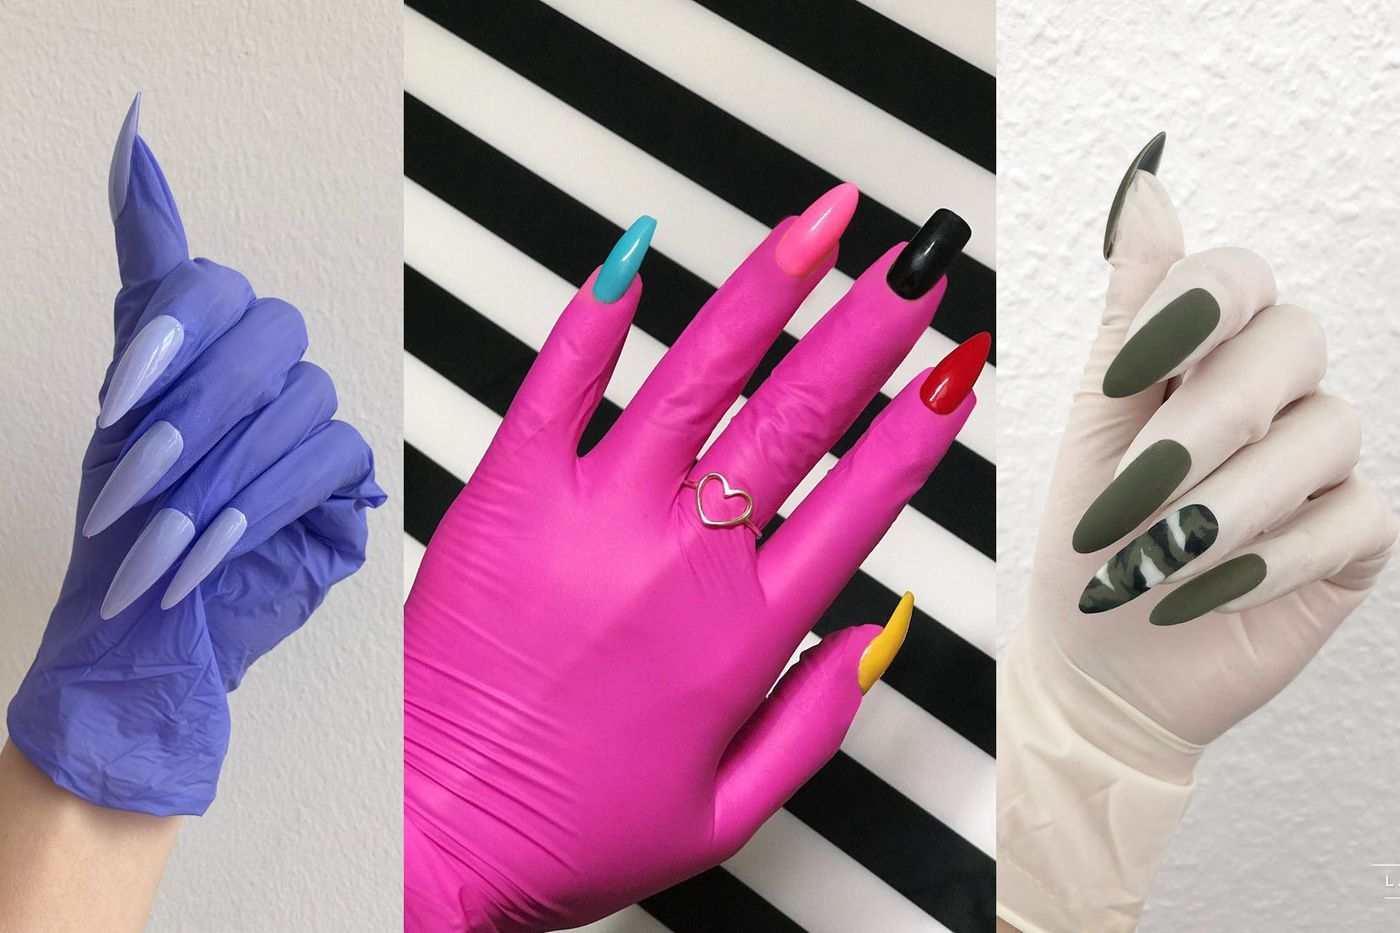 Nail Artists Are Repurposing Surgical Gloves To Show Off Their Art The Verge